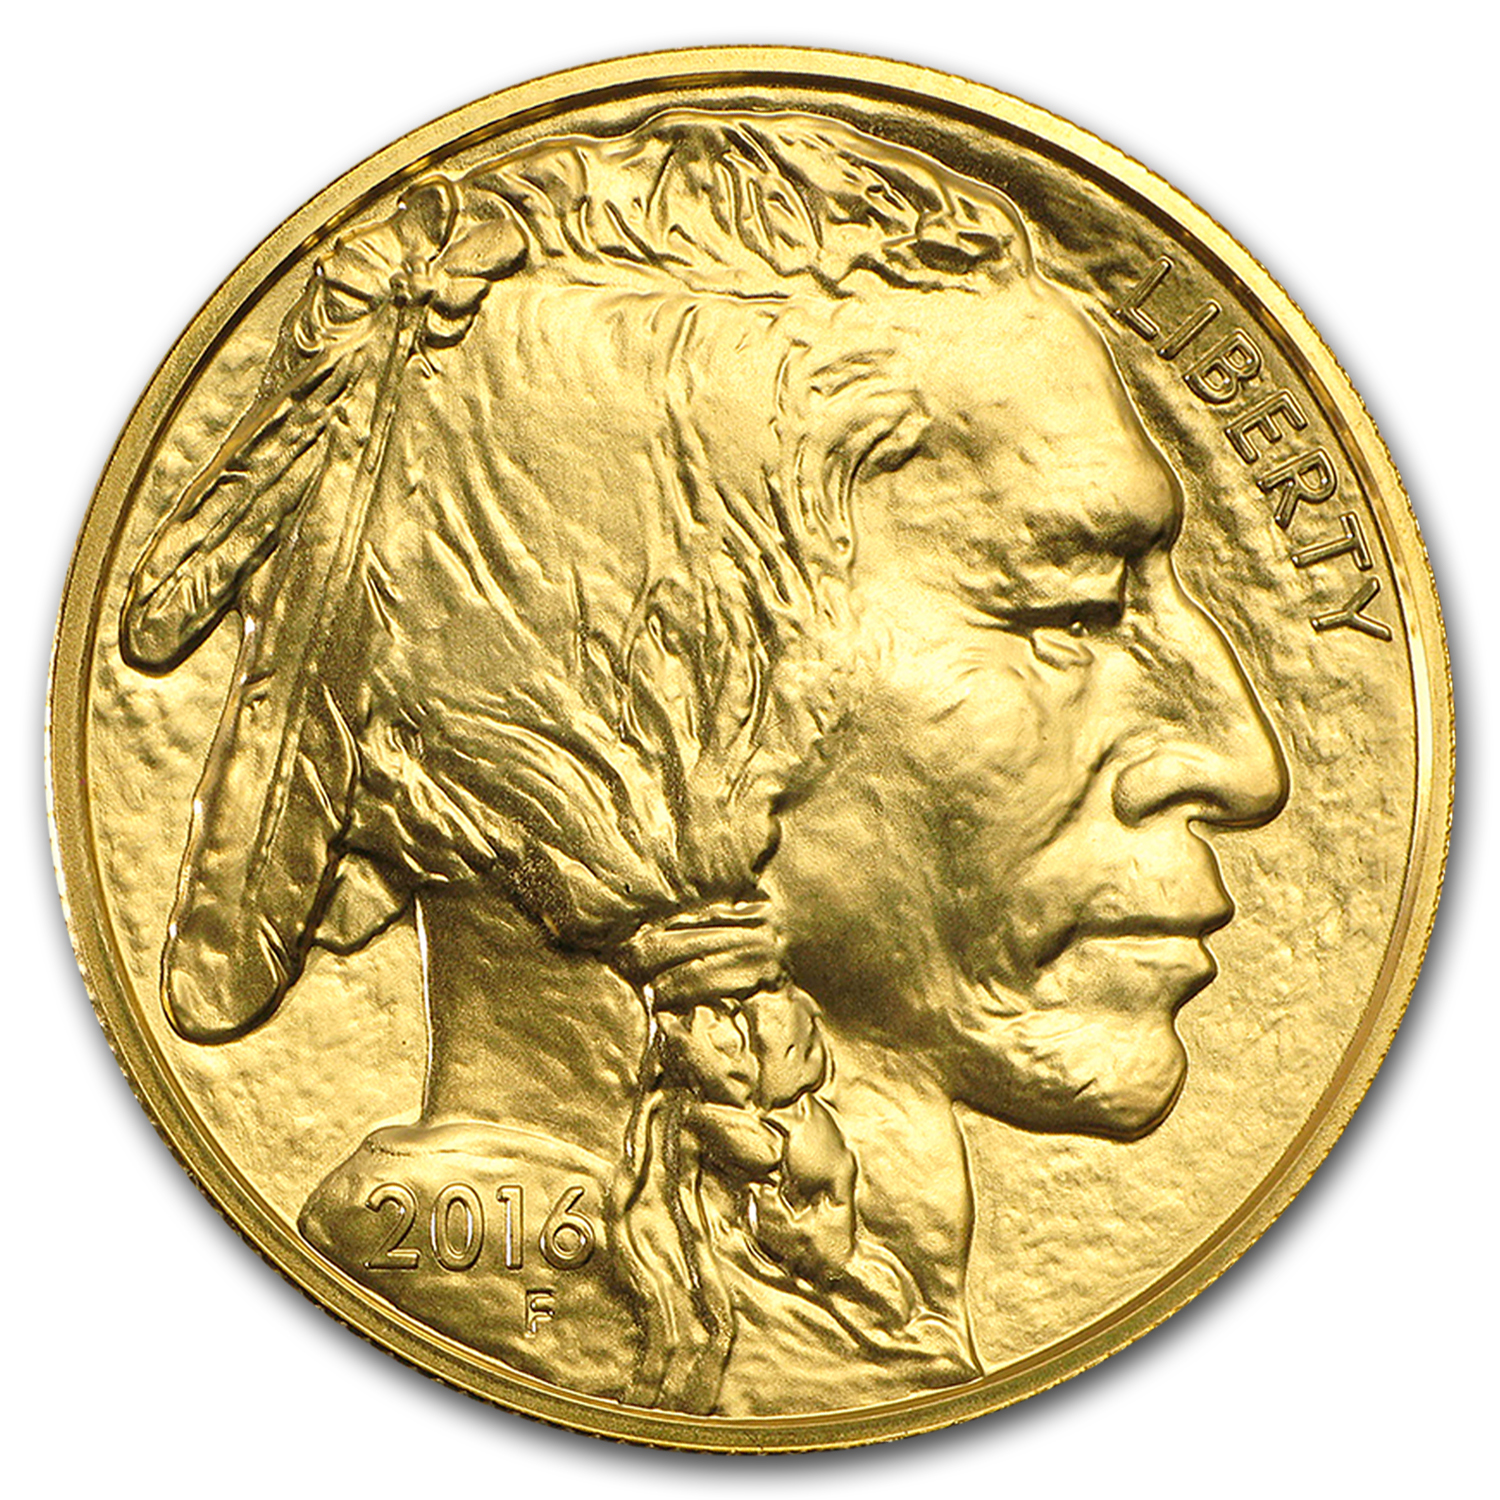 2016 1 Oz Gold Buffalo Coin For Sale Buy Gold American